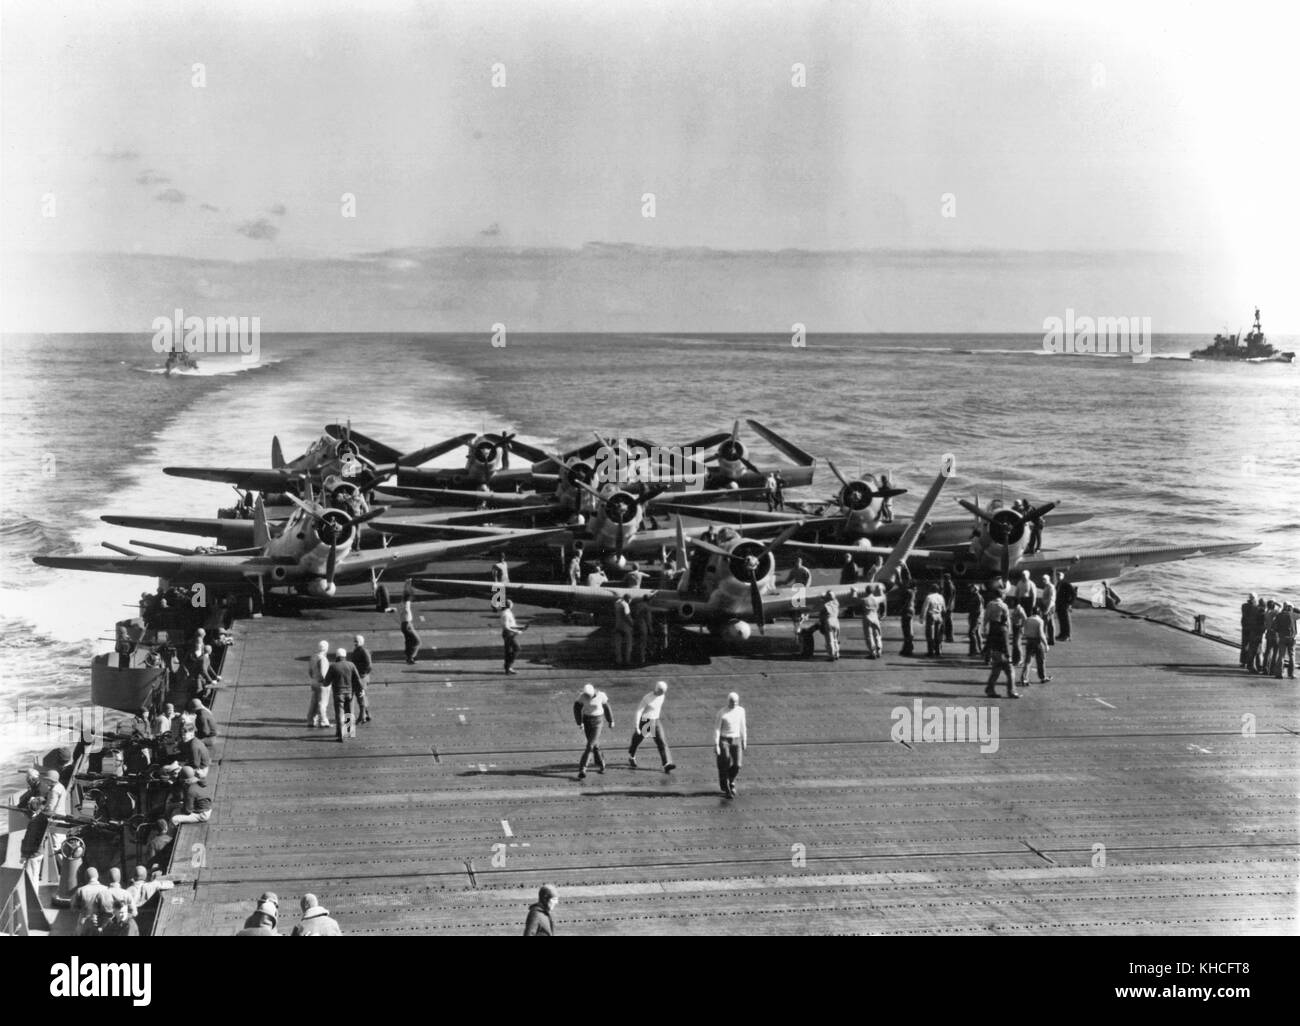 U.S. Navy Torpedo Squadron Six (VT-6) TBD-1 aircraft are prepared for launching on USS Enterprise (CV-6) at about - Stock Image